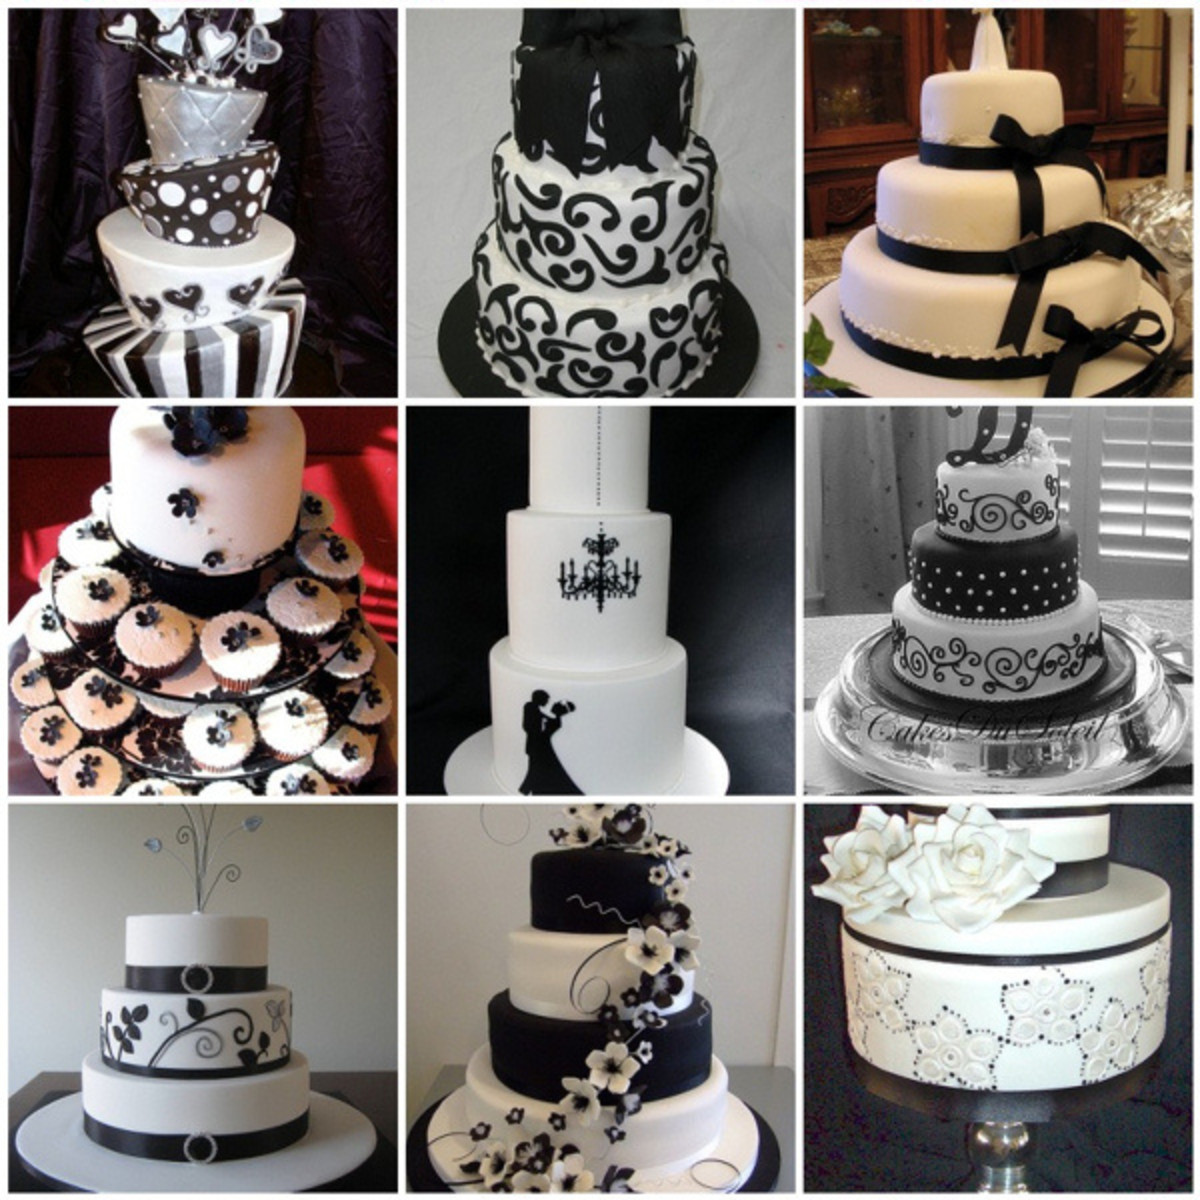 Again If You Want To Liven These Cakes Up A Bit Can Always Add Splash Of Single Accent Color Like Red Or Fuchsia For An Entirely Diffe Look